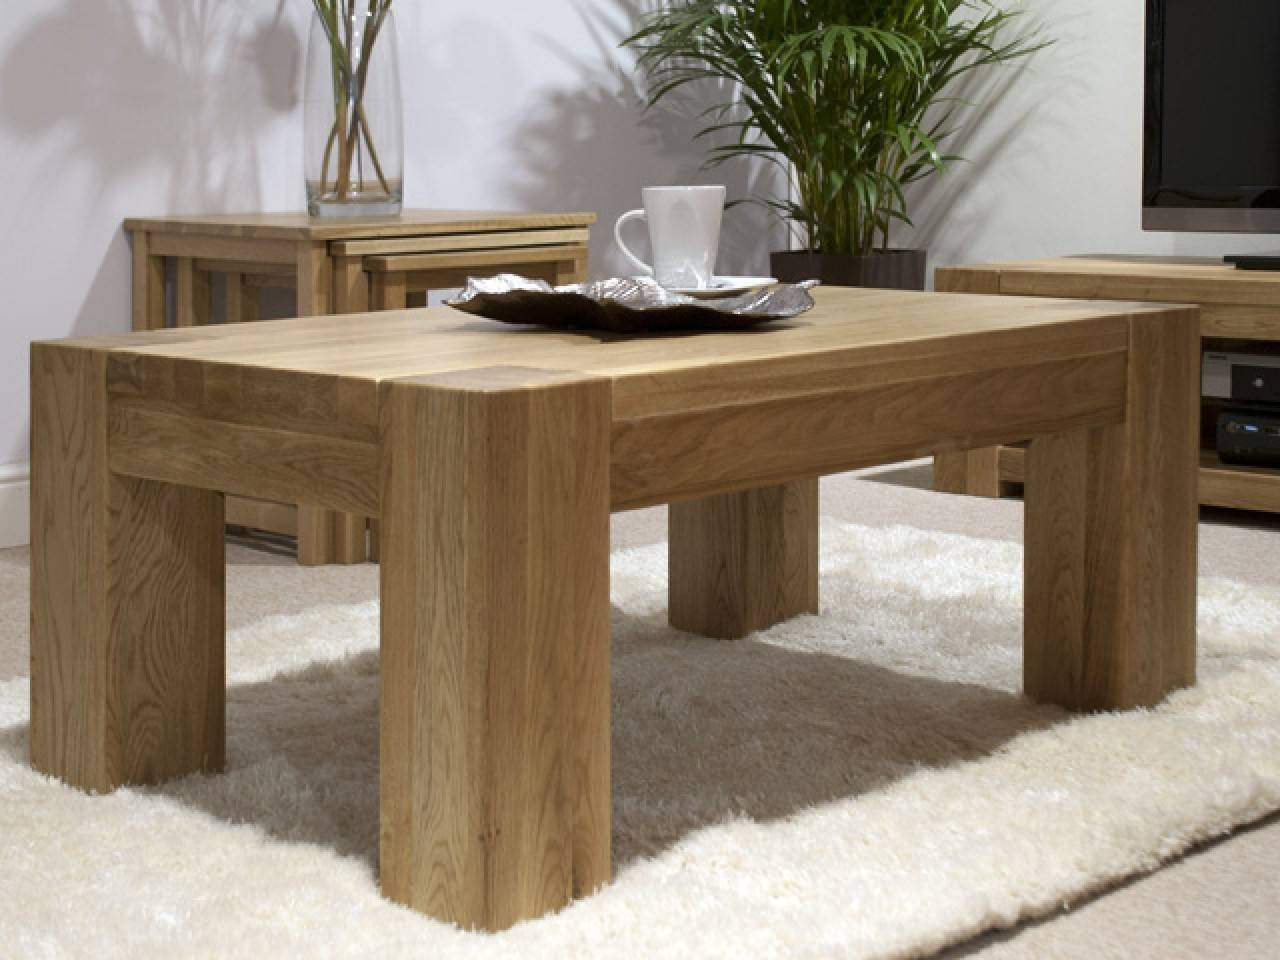 Coffee Tables: Appealing Large Coffee Tables Ideas Large Coffee With Regard To Chunky Coffee Tables (View 11 of 30)